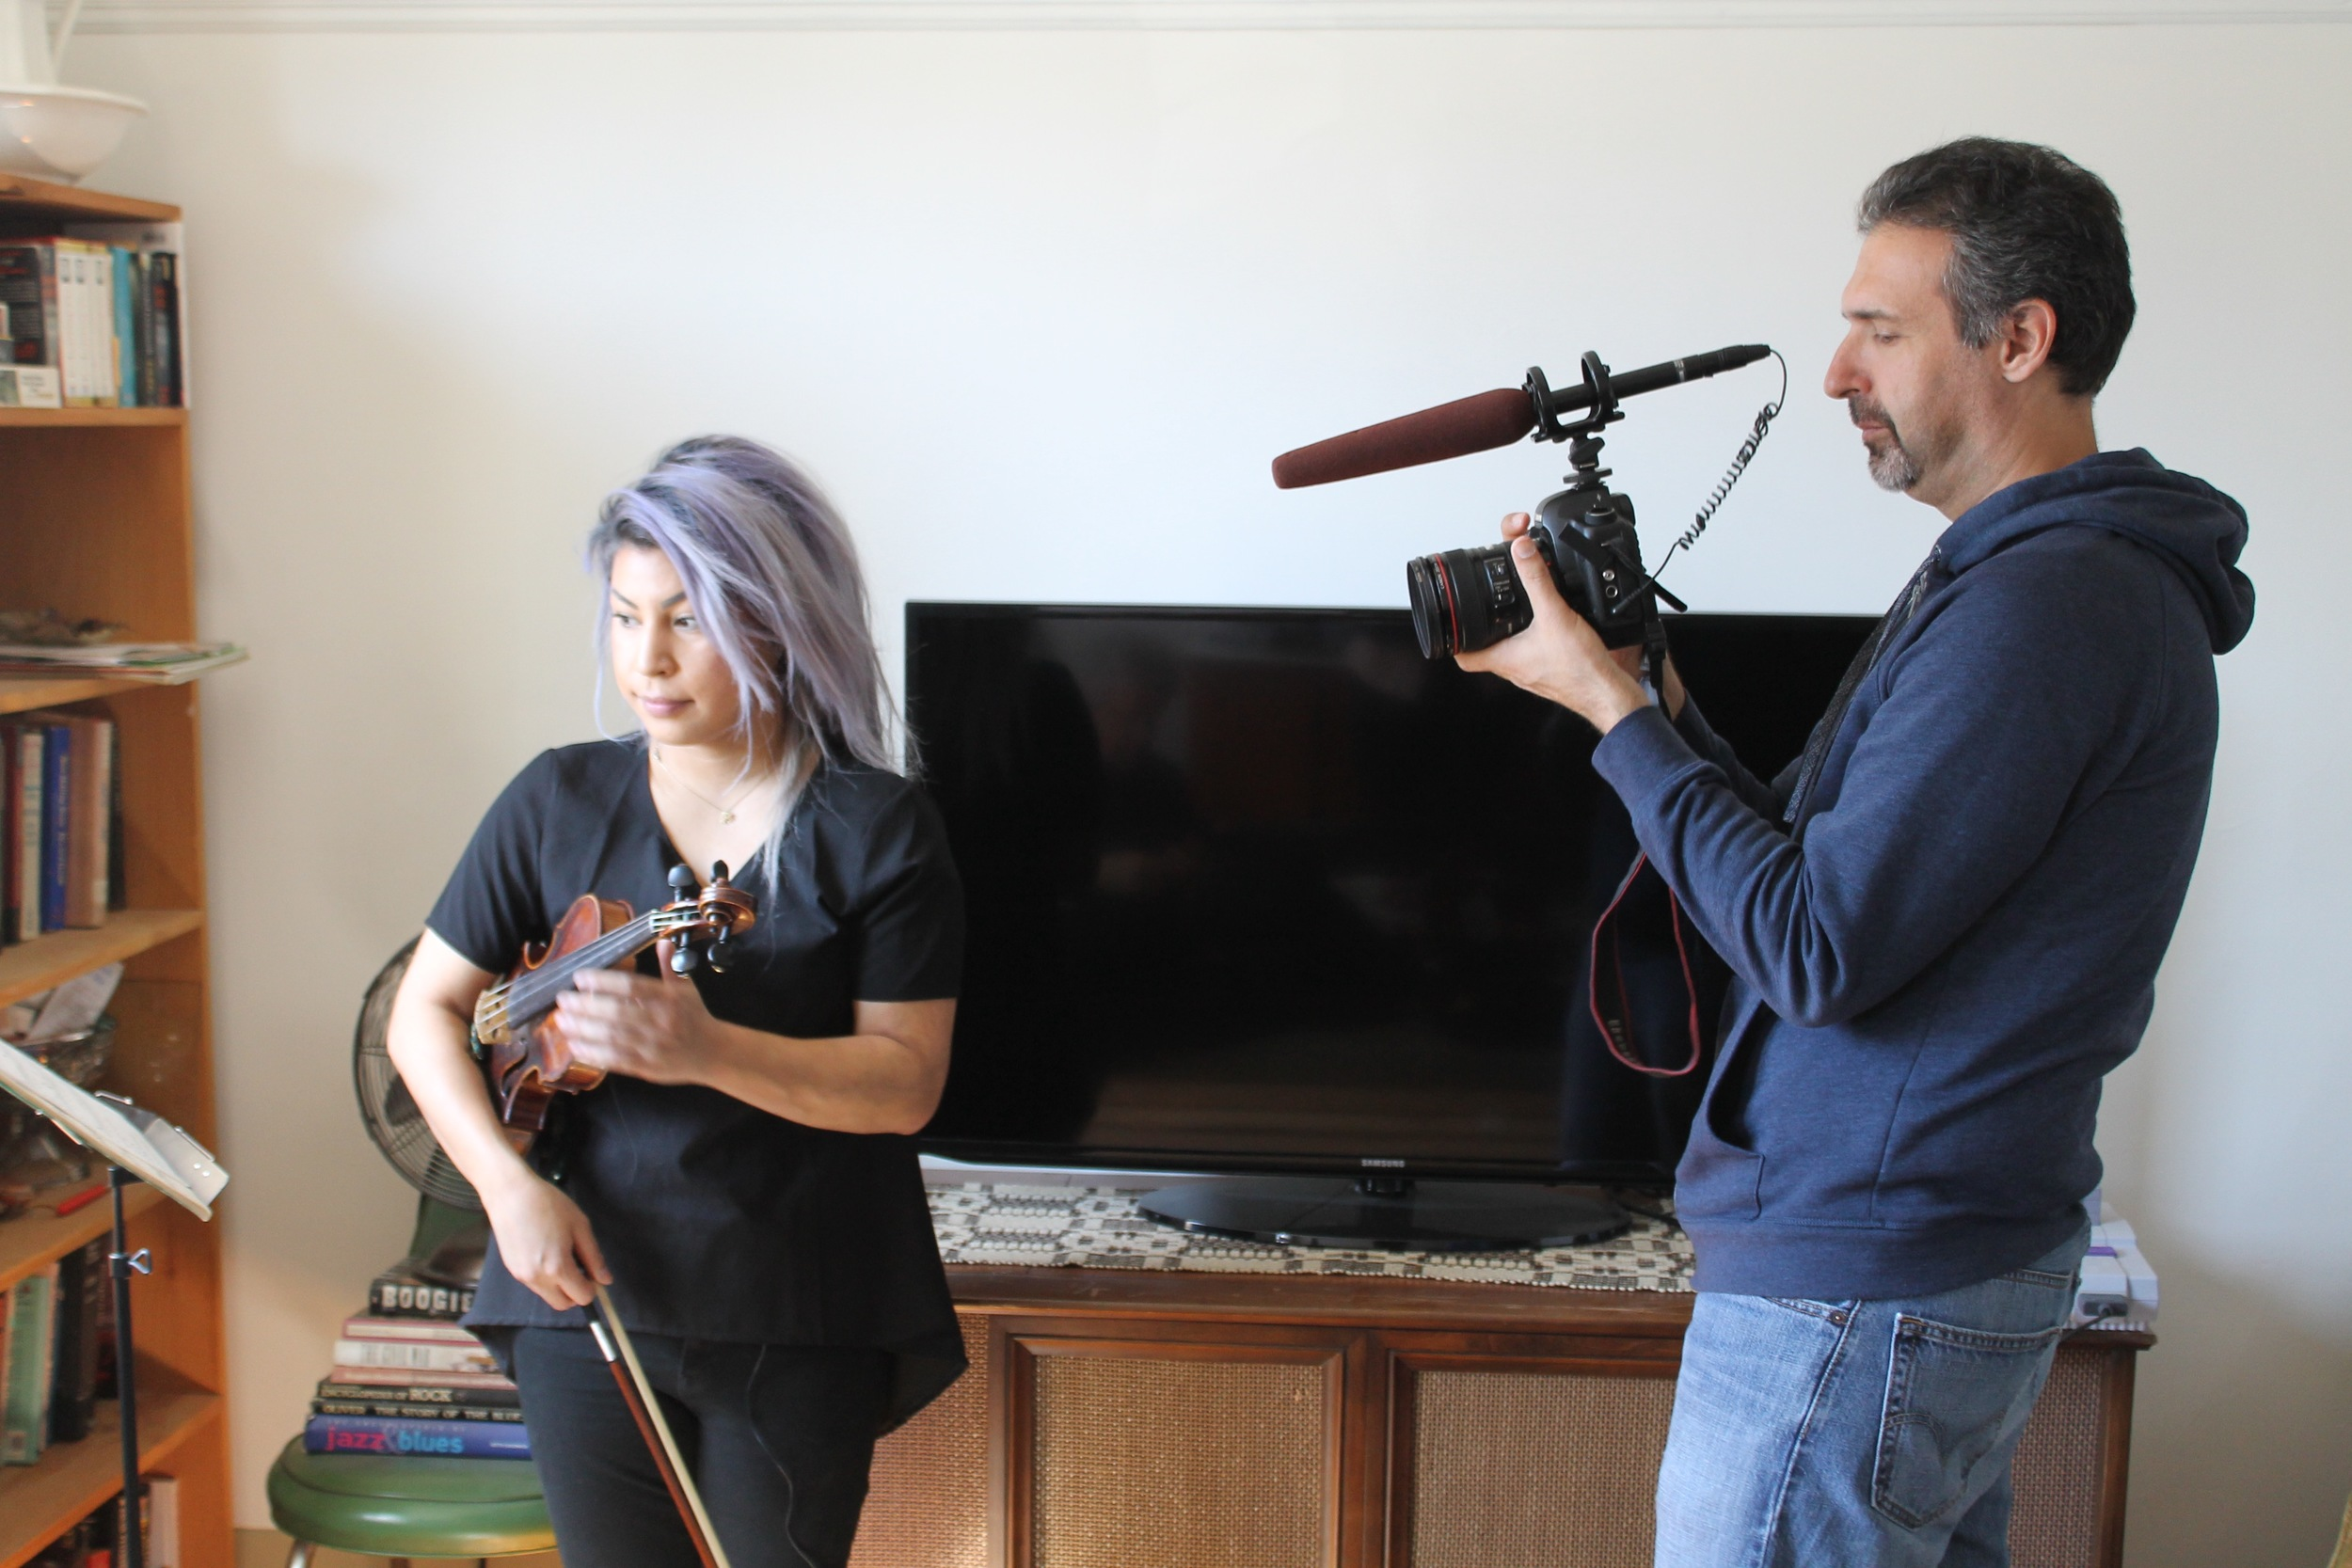 Singer, violinist and musician Maya Killtron (left) with cinematographer Igal Hecht (right) - Apr. 2016